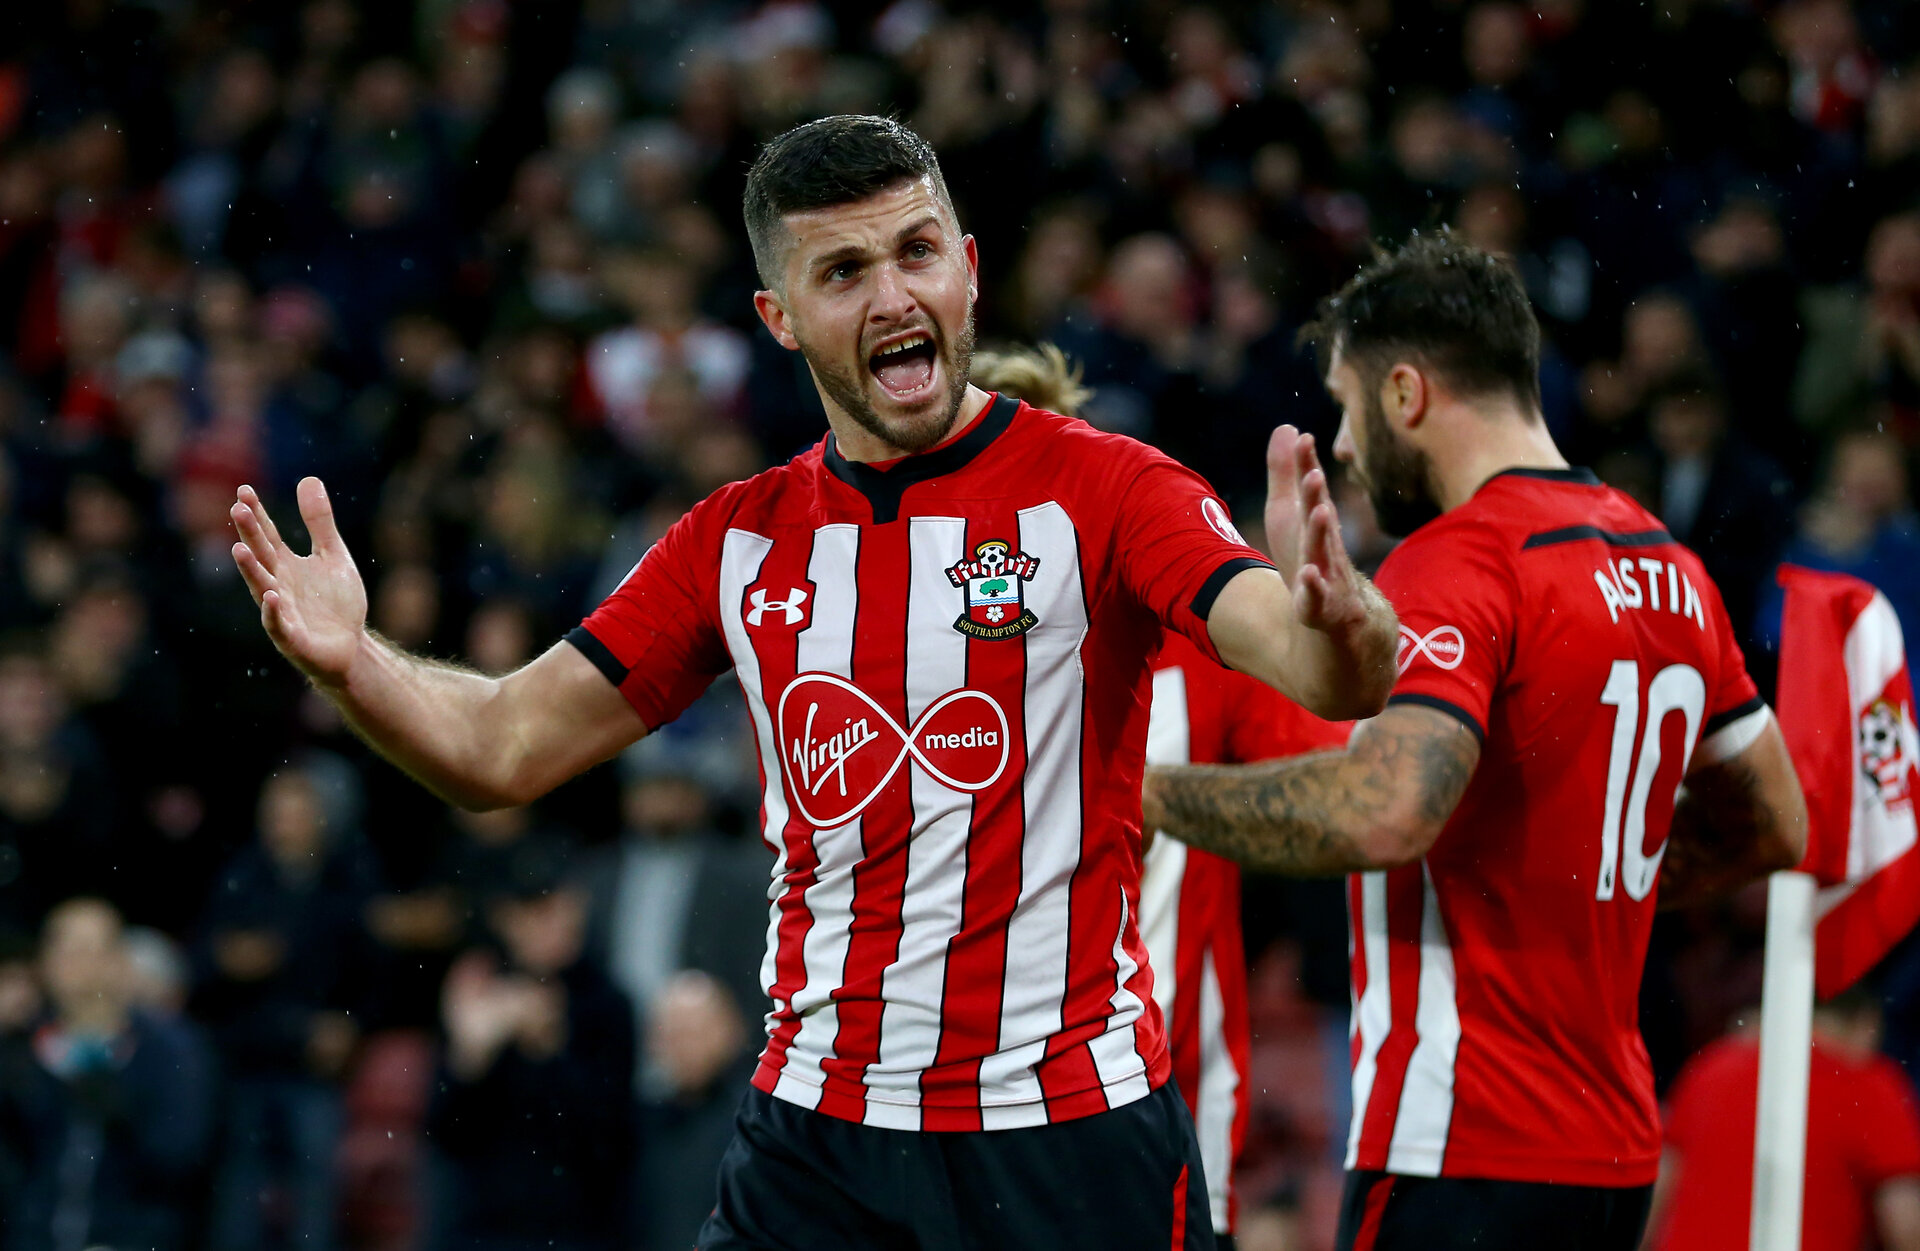 SOUTHAMPTON, ENGLAND - DECEMBER 16: Shane Long of Southampton during the Premier League match between Southampton FC and Arsenal FC at St Mary's Stadium on December 15, 2018 in Southampton, United Kingdom. (Photo by Matt Watson/Southampton FC via Getty Images)